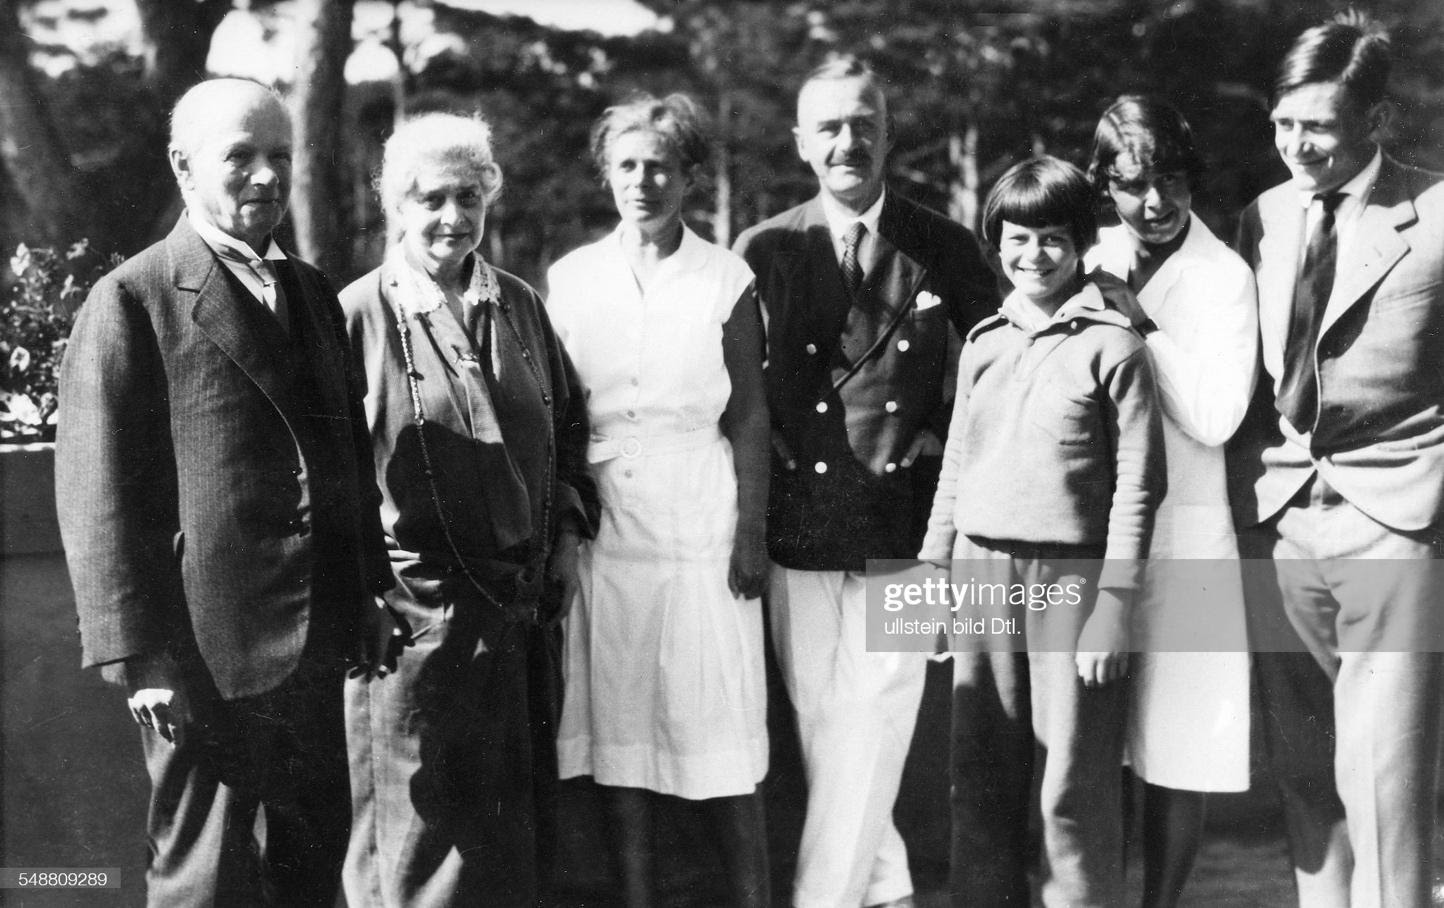 Mann, Thomas - Writer, D  *06.06.1875-12.08.1955+ Nobel Prize laureate 1929  - Portrait of the family (from left): the parents in law Alfred and Hedwig Pringsheim, Katja and Thomas Mann, Elisabeth, Monika and Golo Mann  - about 1931  - Published in:  : News Photo